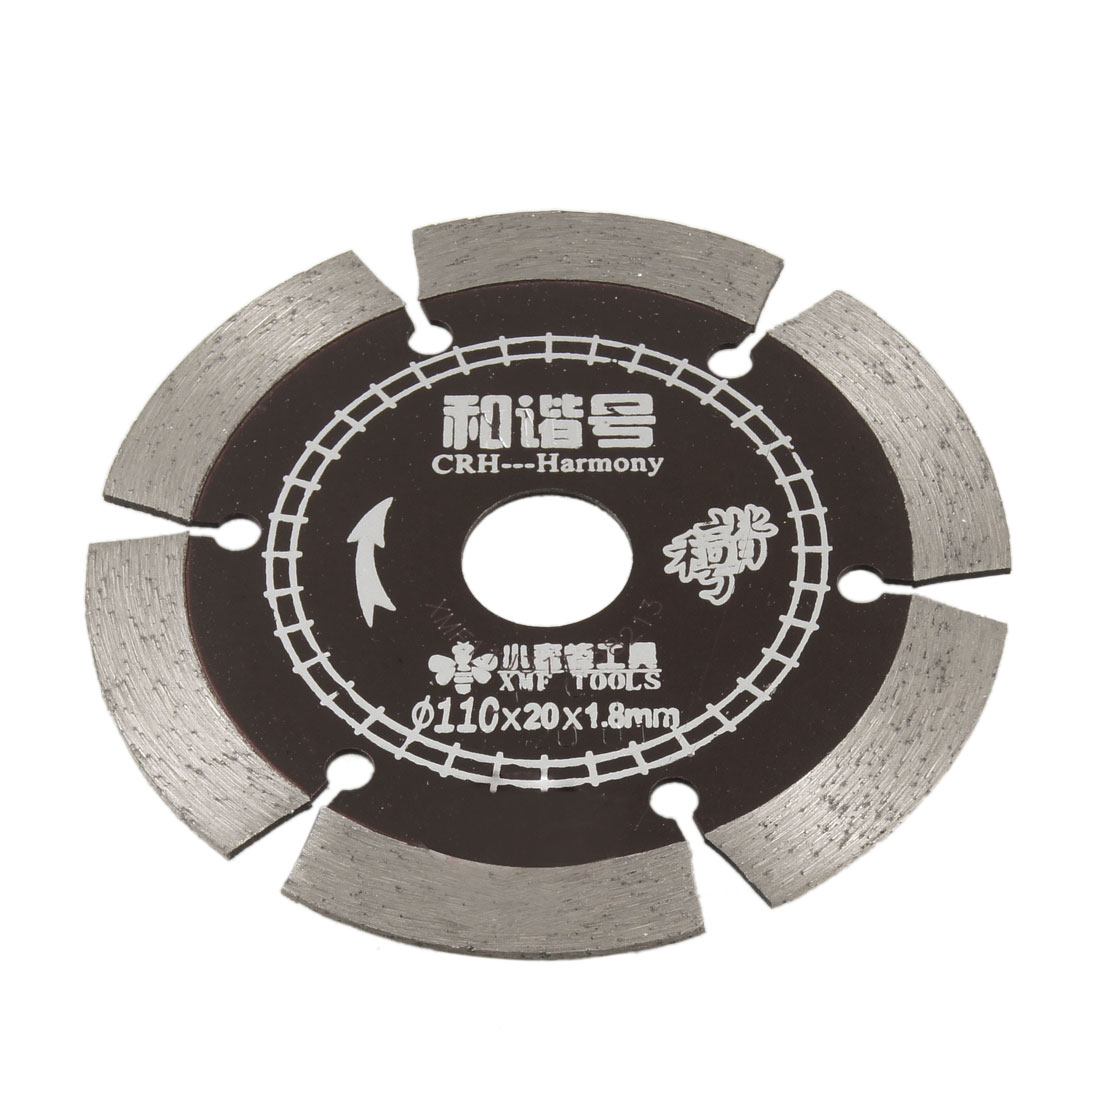 Concrete Tile Cutting Wheel Diamond Coated Saw Cutter 110mm x 20mm x 1.8mm